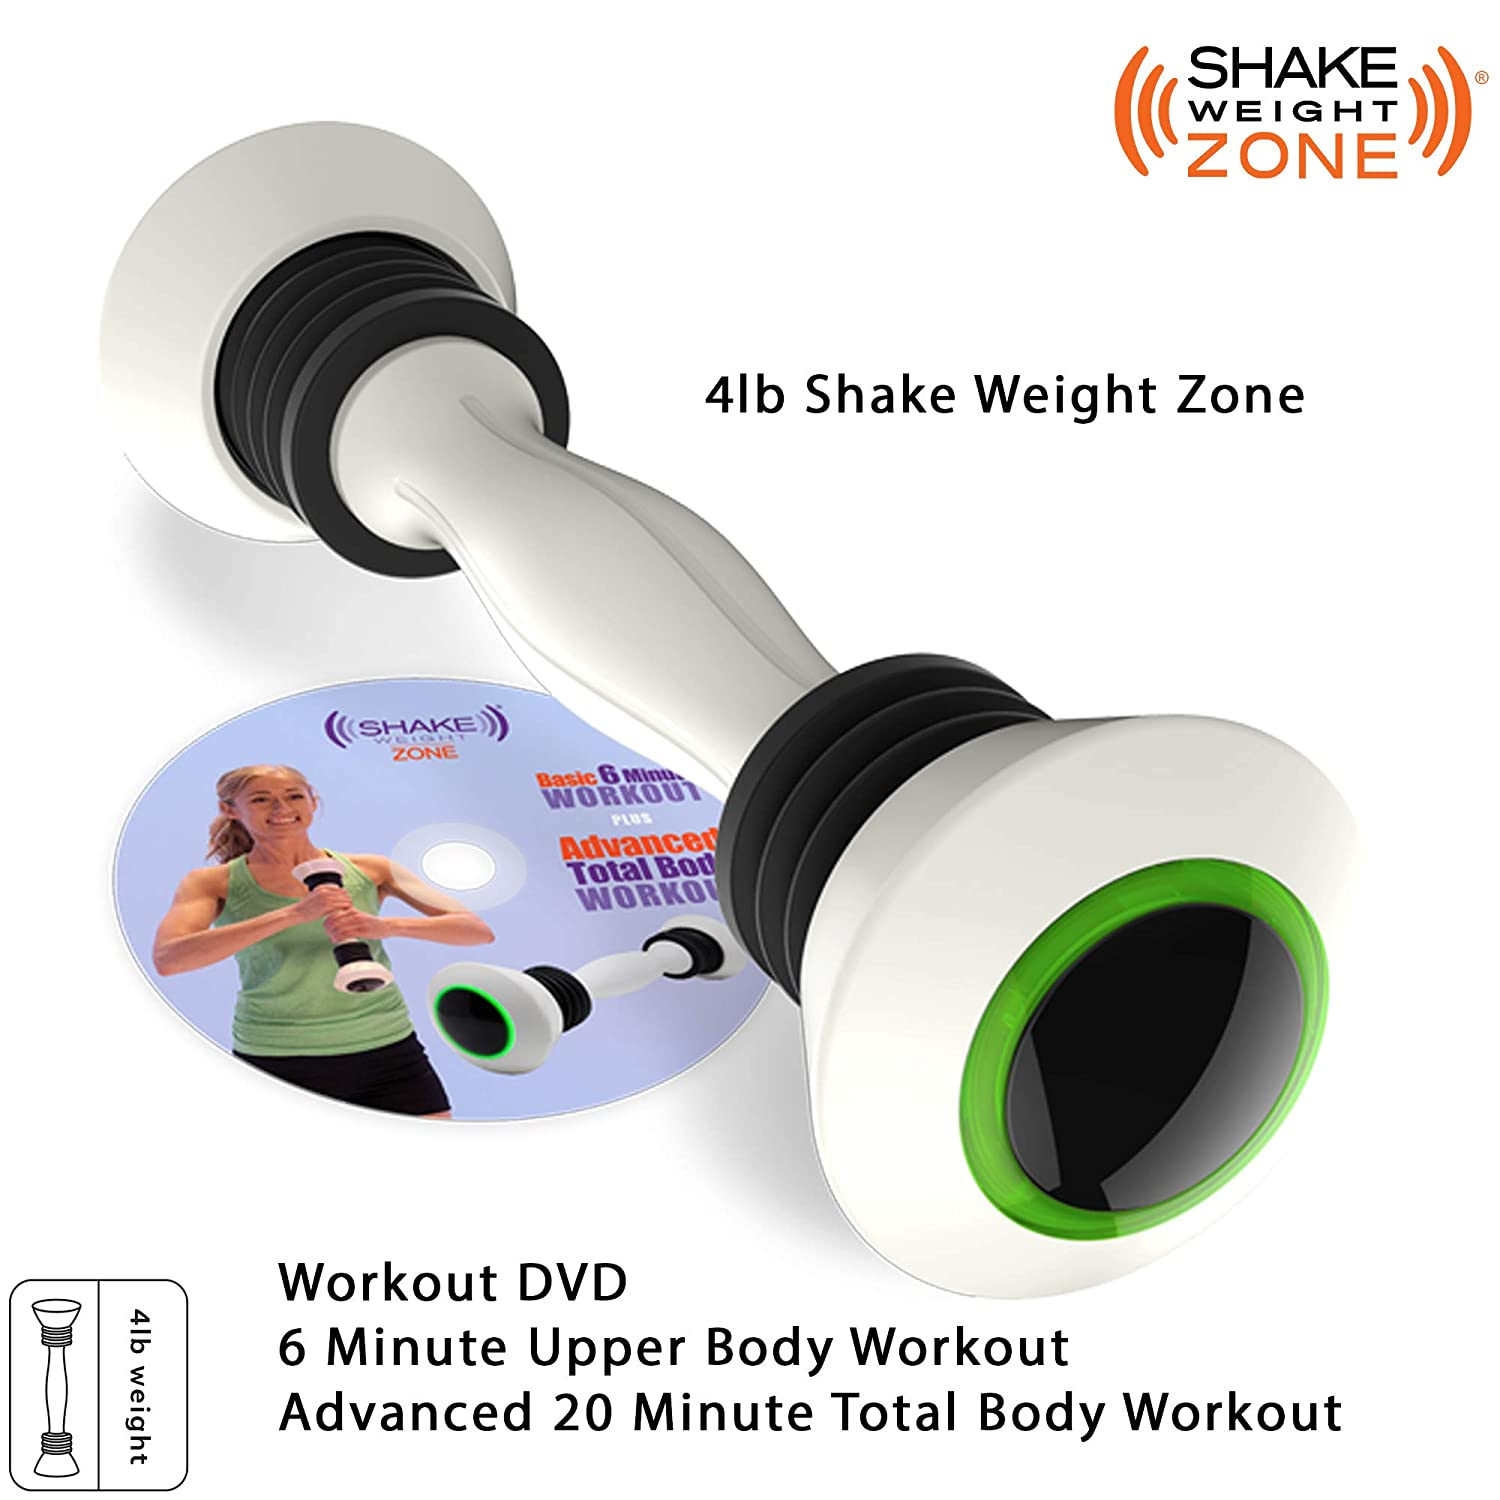 Allstar Innovations Shake Weight Zone- 4 lb Arm Firming, Muscle Toning Dumbbell, Red, Green, Orange LED Zone Ring Guides You Through Your Workout, Bonus Workout DVD Included